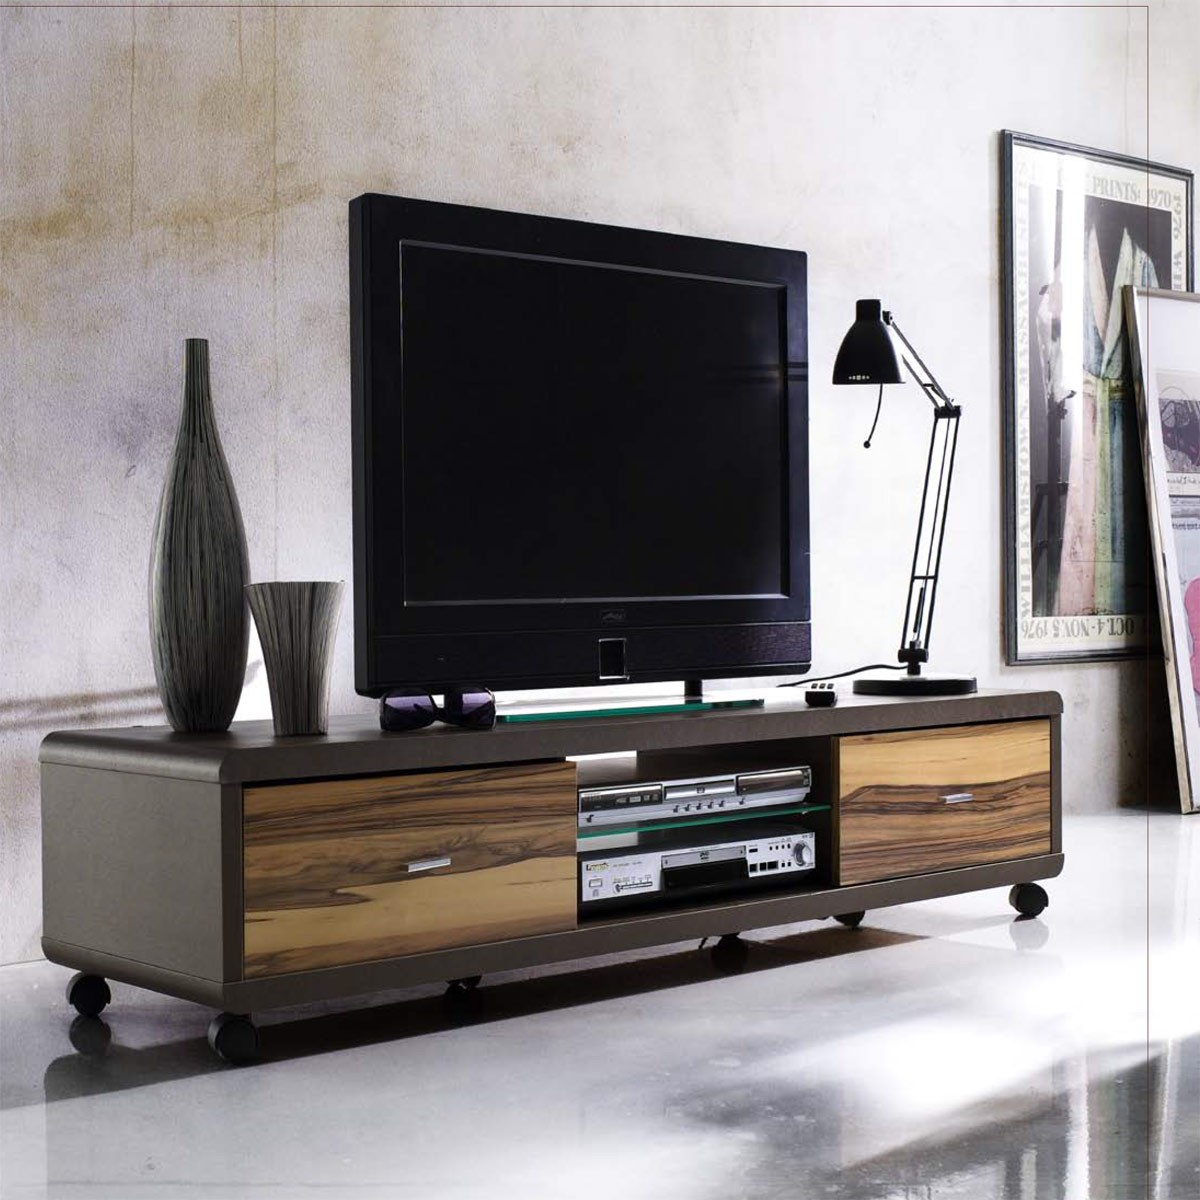 tv lowboard sligo mit schubkasten in weiss. Black Bedroom Furniture Sets. Home Design Ideas